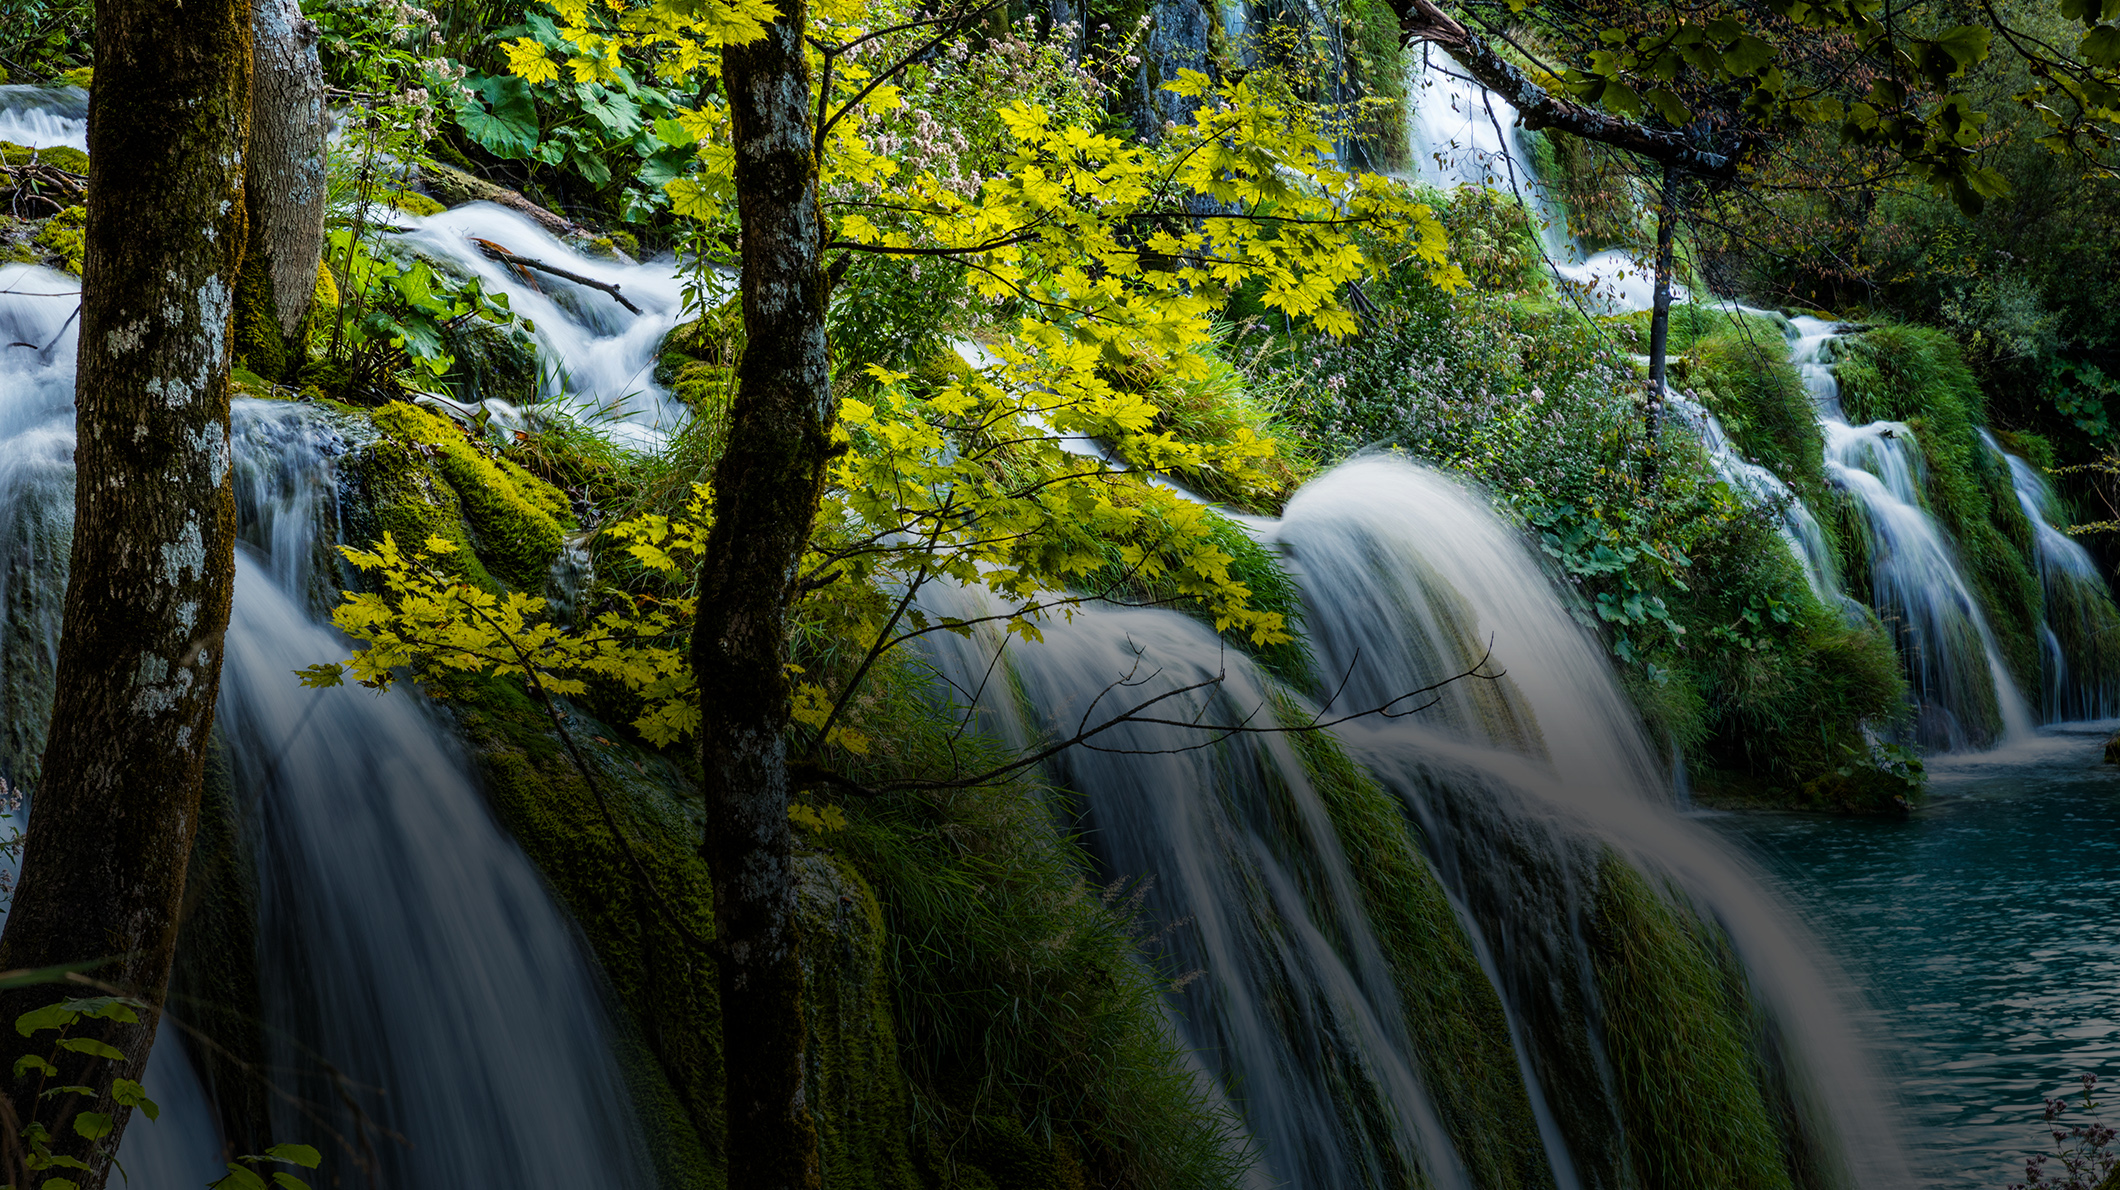 A waterfall in the woods